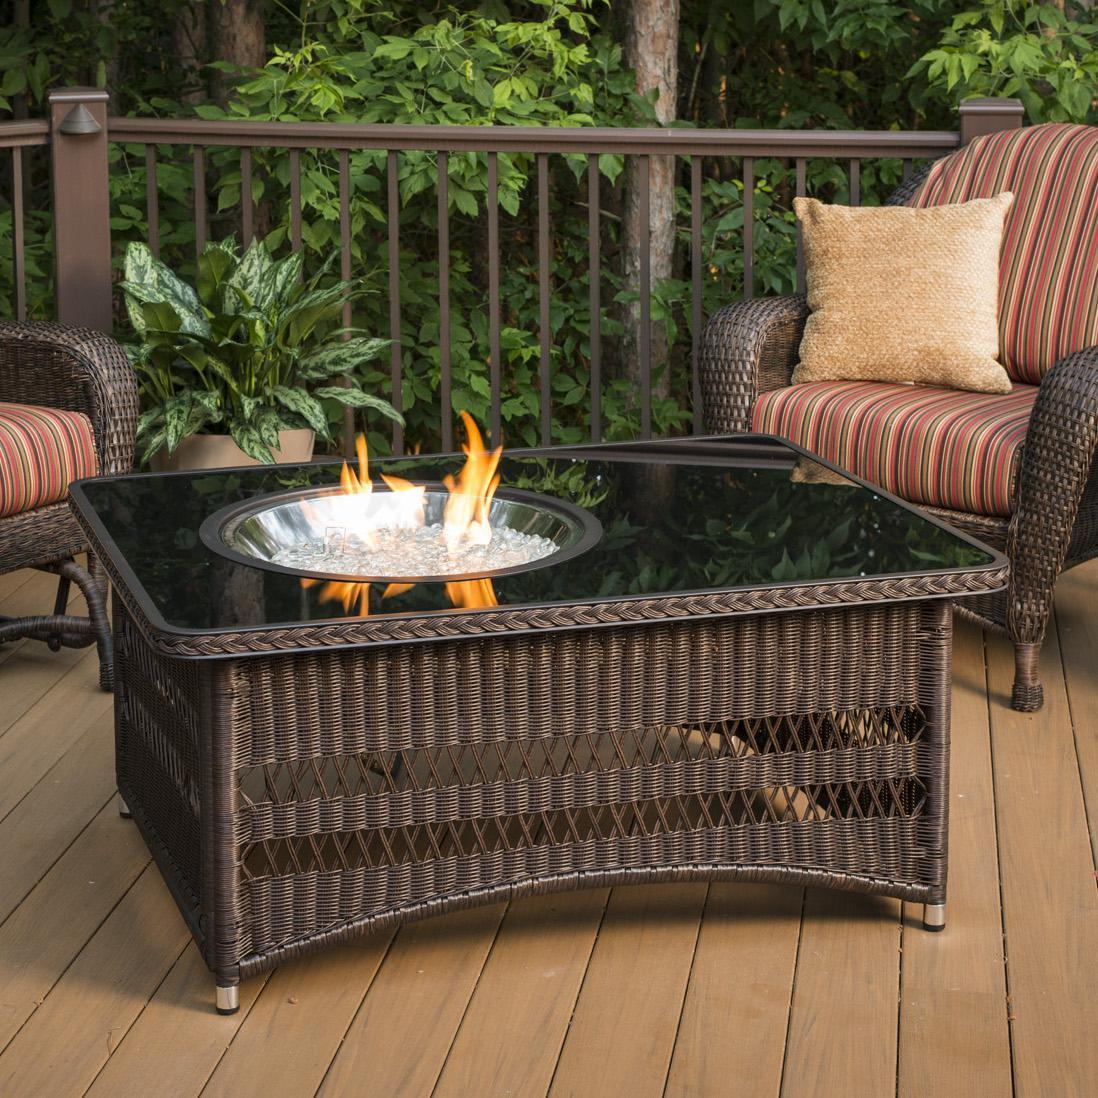 The Outdoor Greatroom Company Naples 48 Inch Rectangular Propane Gas Fire Pit Table With 20 Inch Round Crystal Fire Burner Brown Naples Ct B K Bbqguys Fire Pit Table Gas Firepit Natural Gas